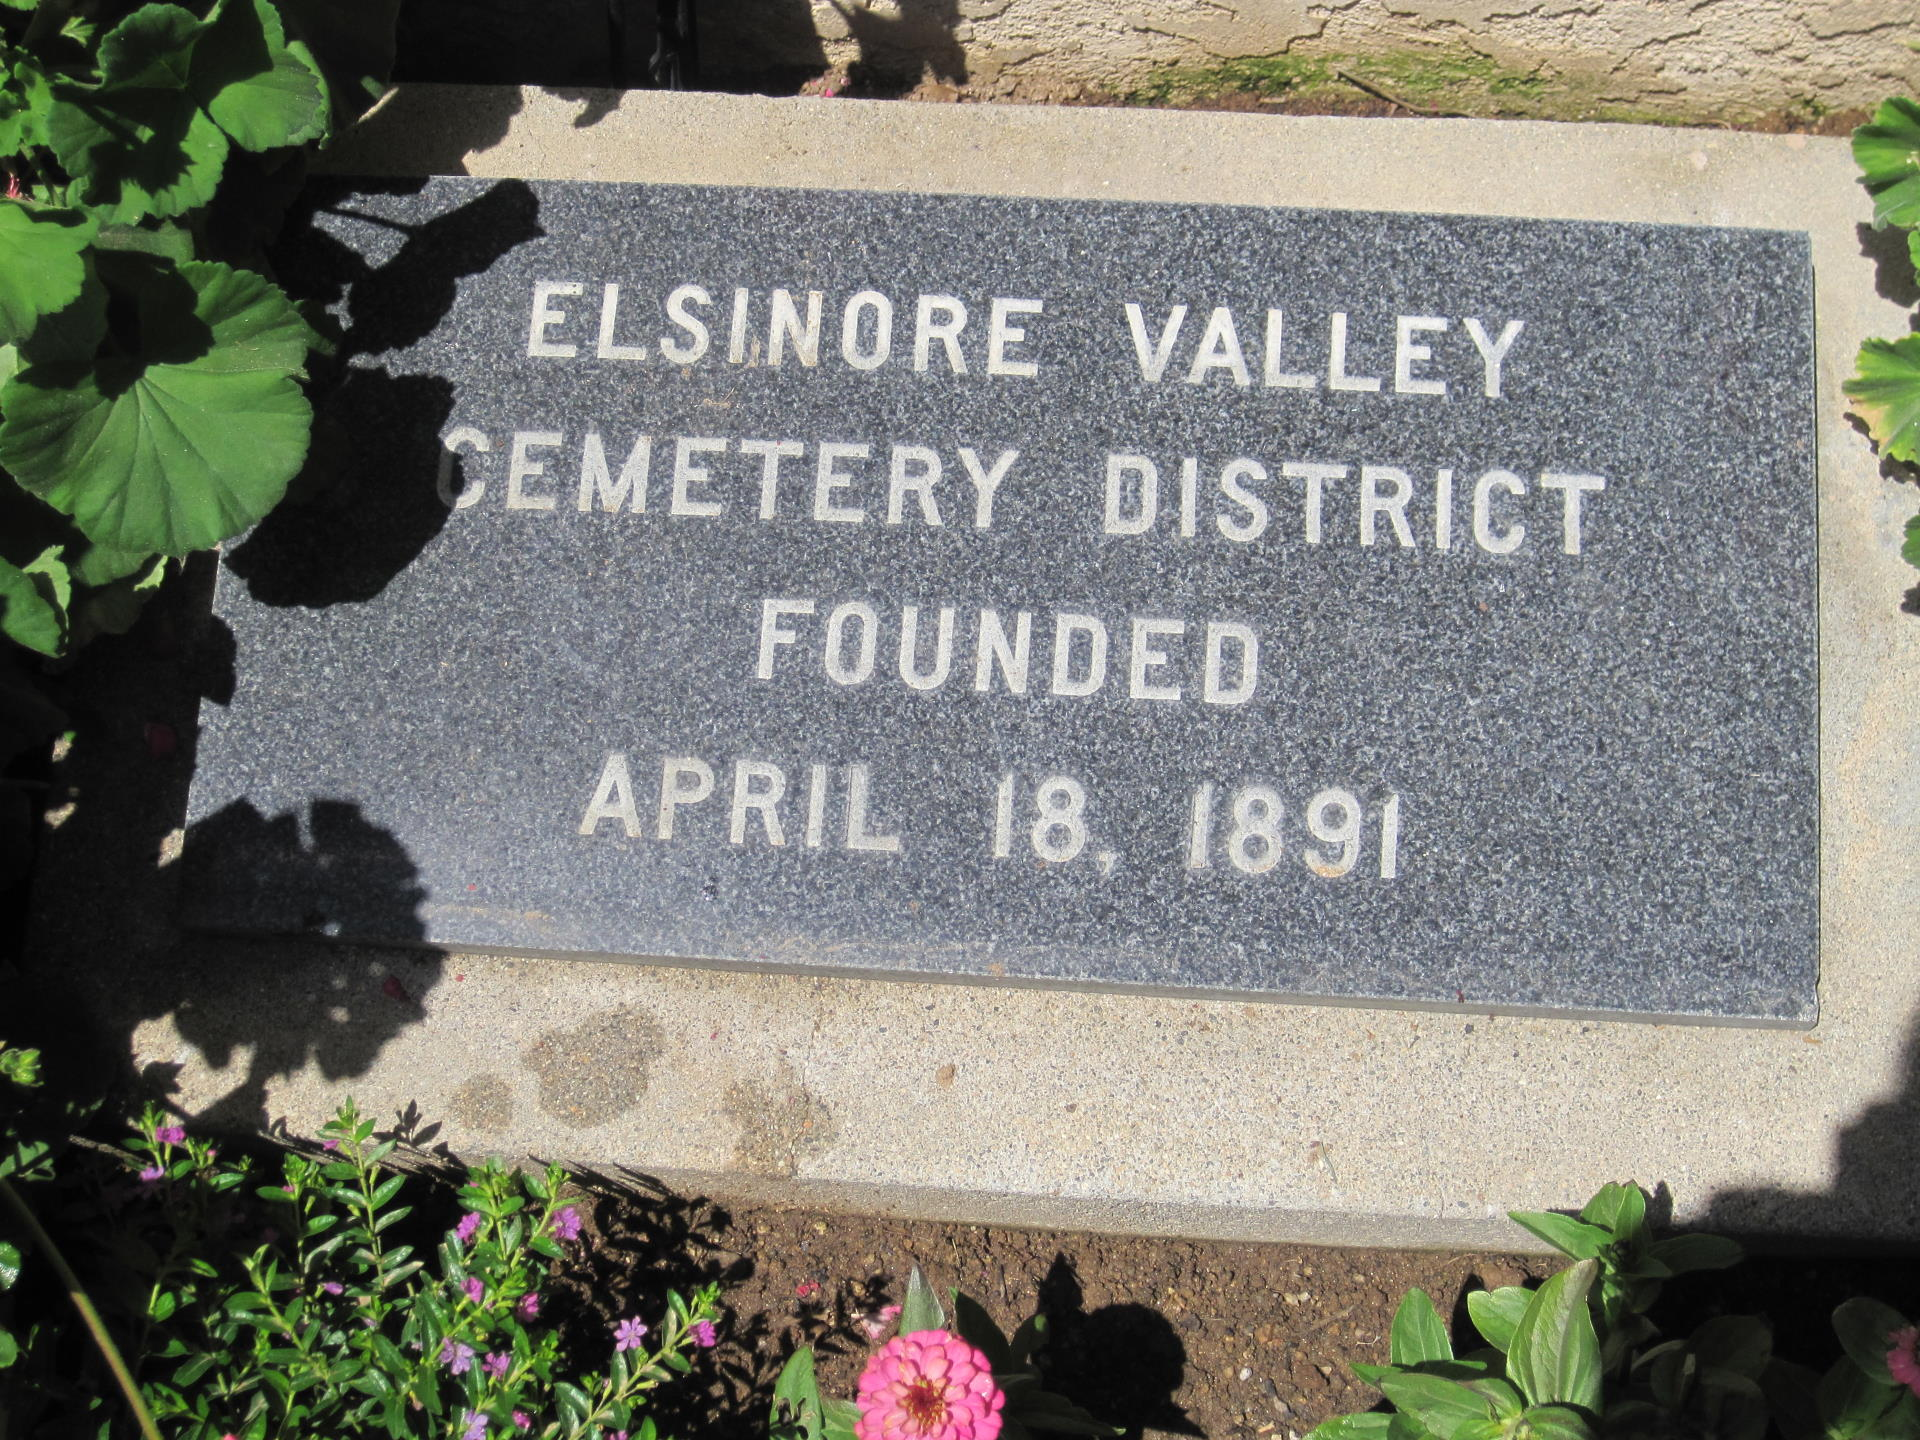 flat stone marker that says Elsinore Valley Cemetery District Founded April 18, 1891